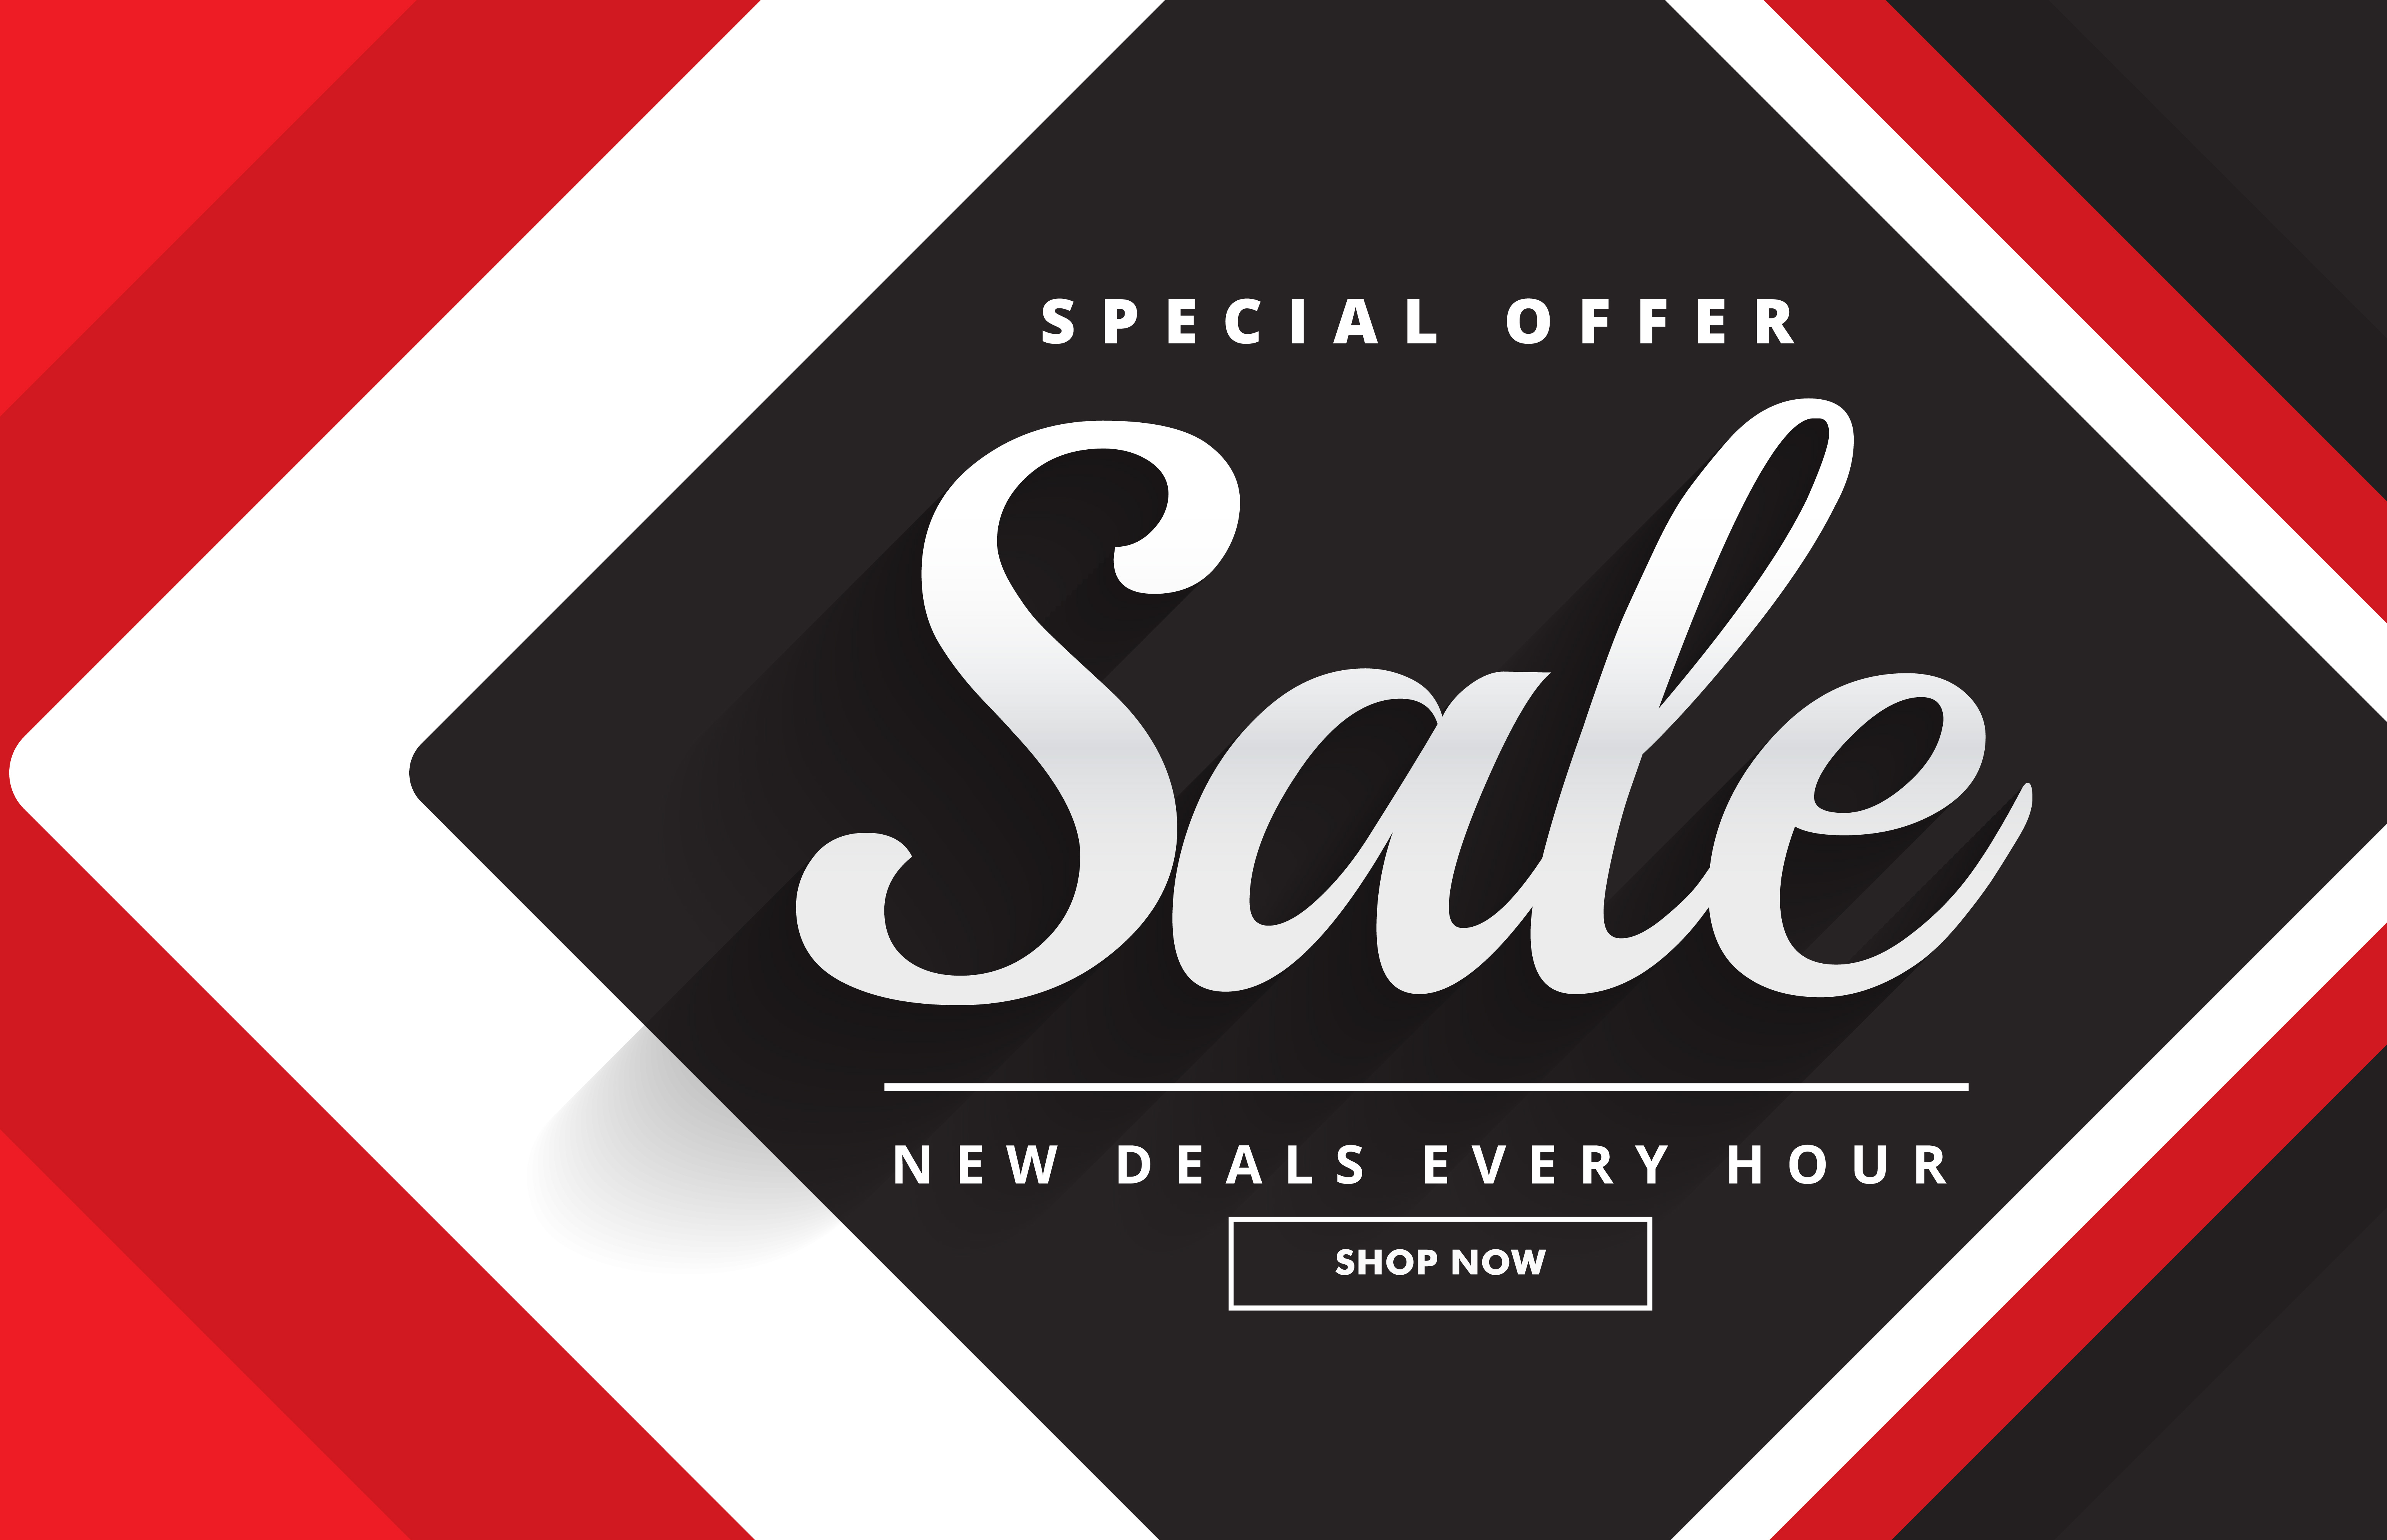 red black awesome sale banner template design for promotion - Download Free Vector Art, Stock ...